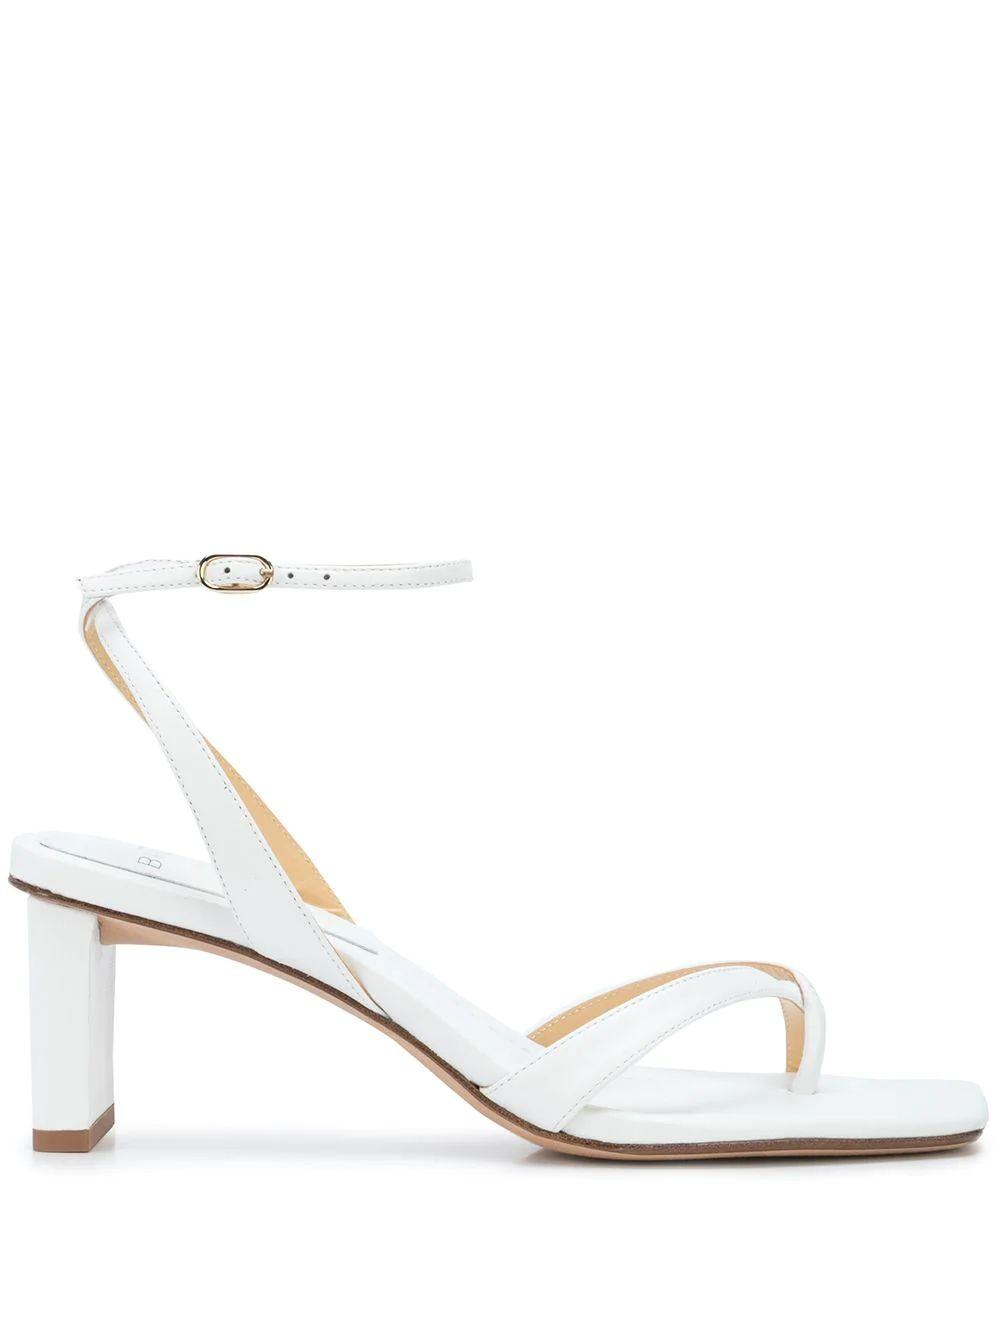 Nelly 50mm Sandal